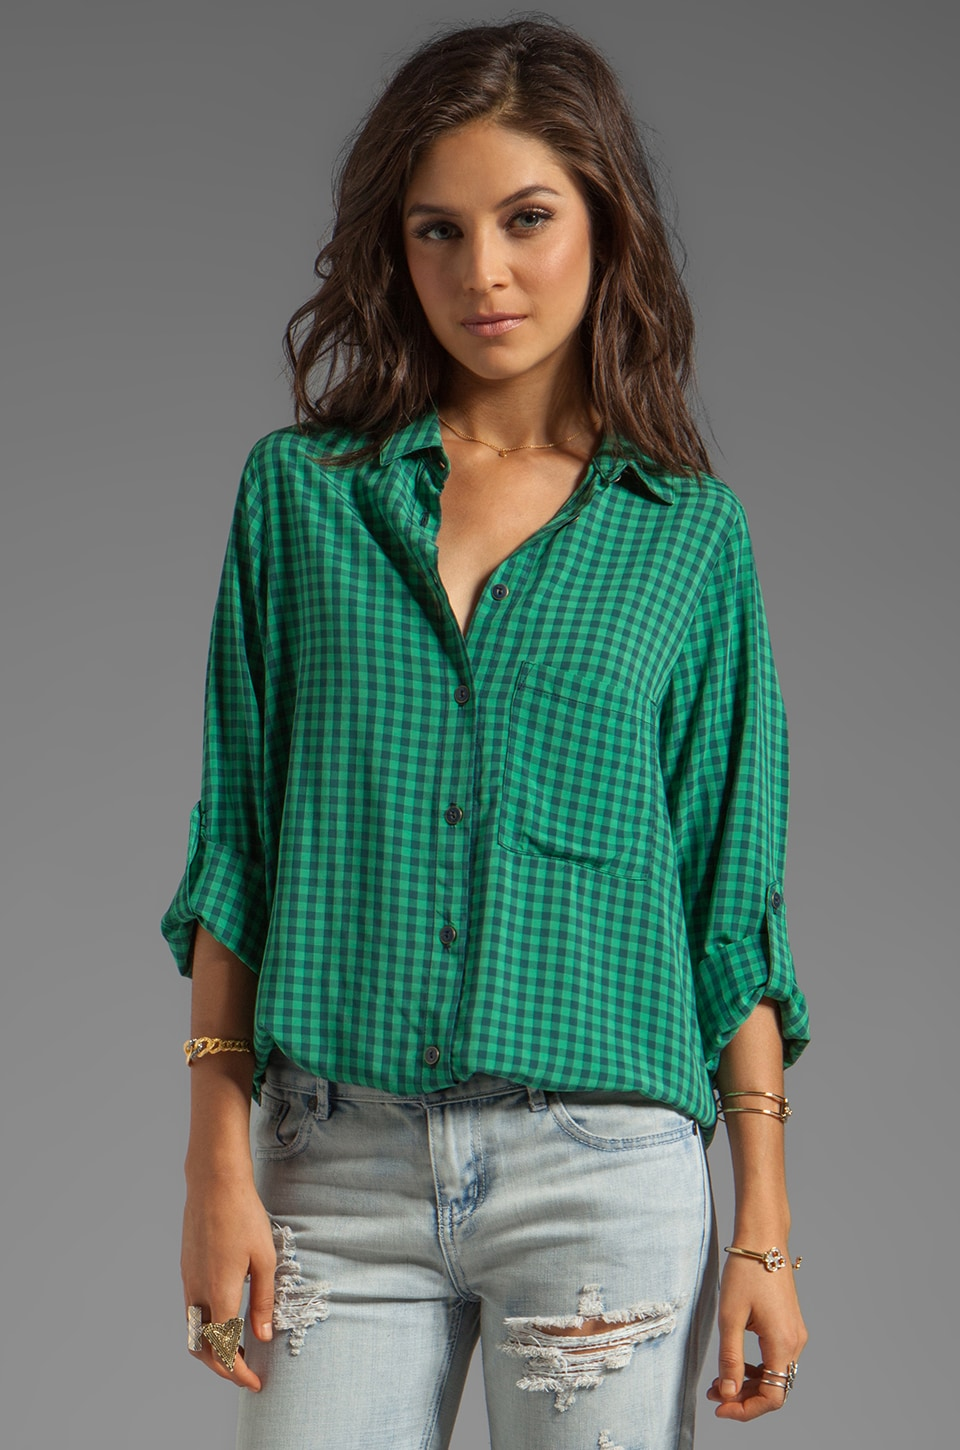 SAM&LAVI Eve Bibi Check Top in Green Combo